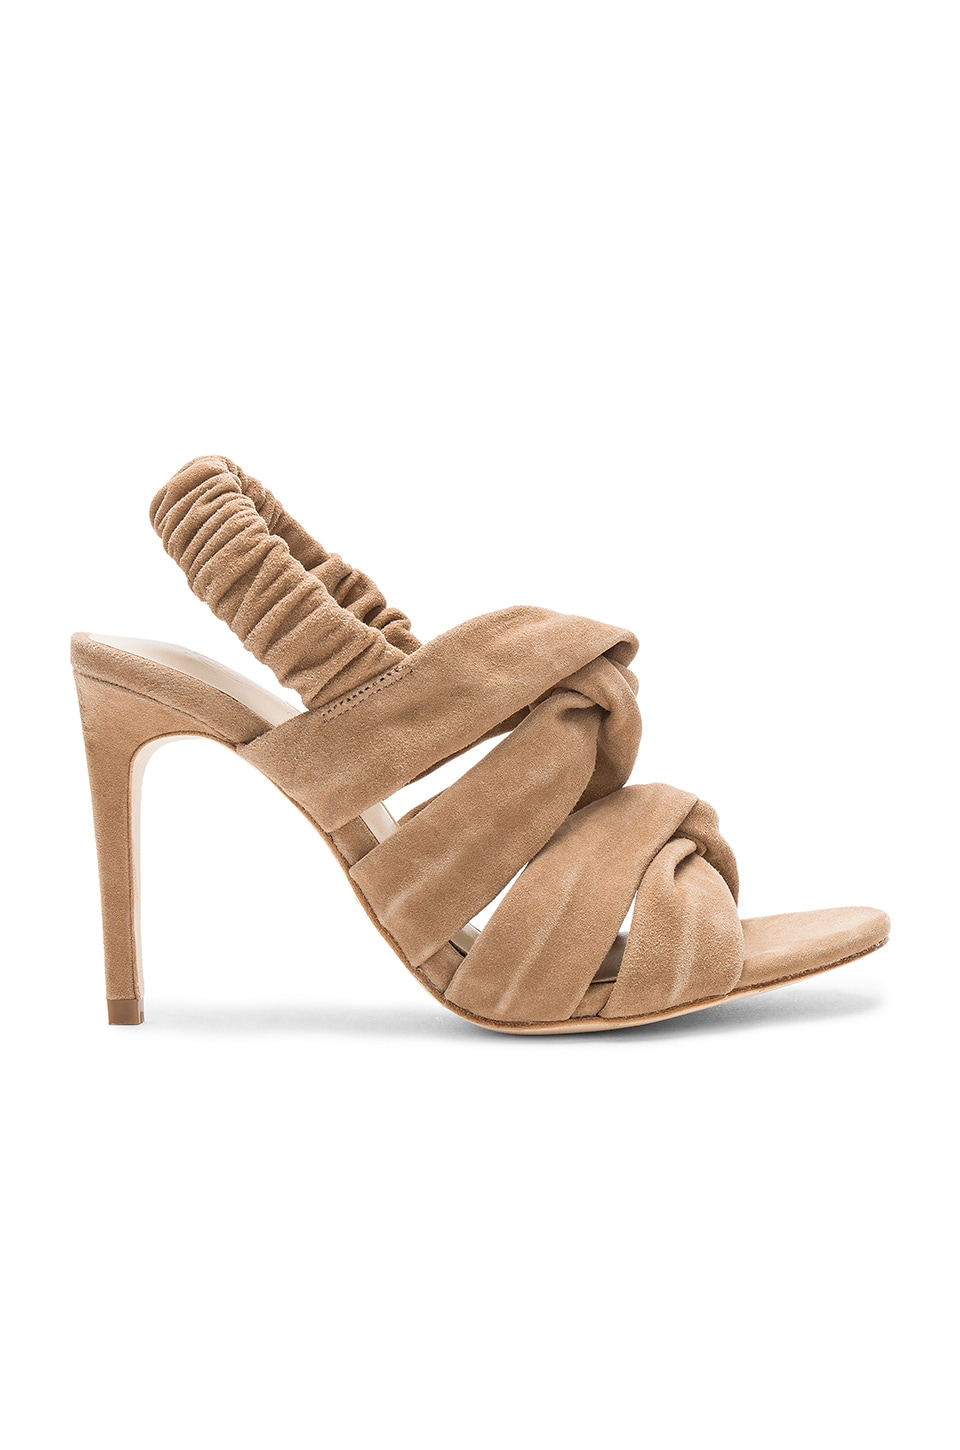 RAYE x House of Harlow 1960 Shenae Heel in Tan